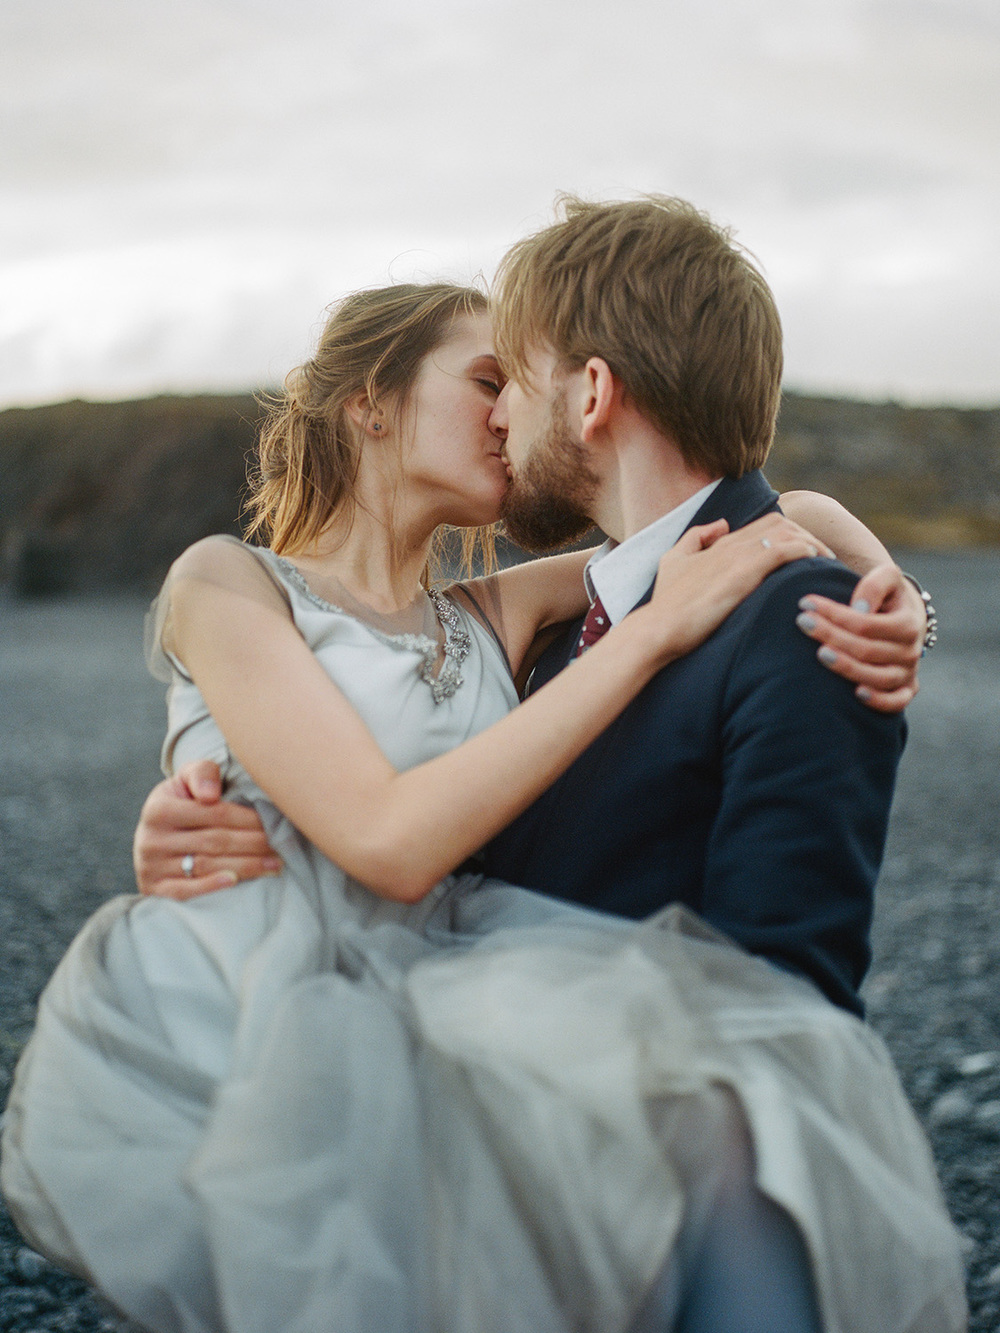 jestcafe.com-wedding_in_iceland80